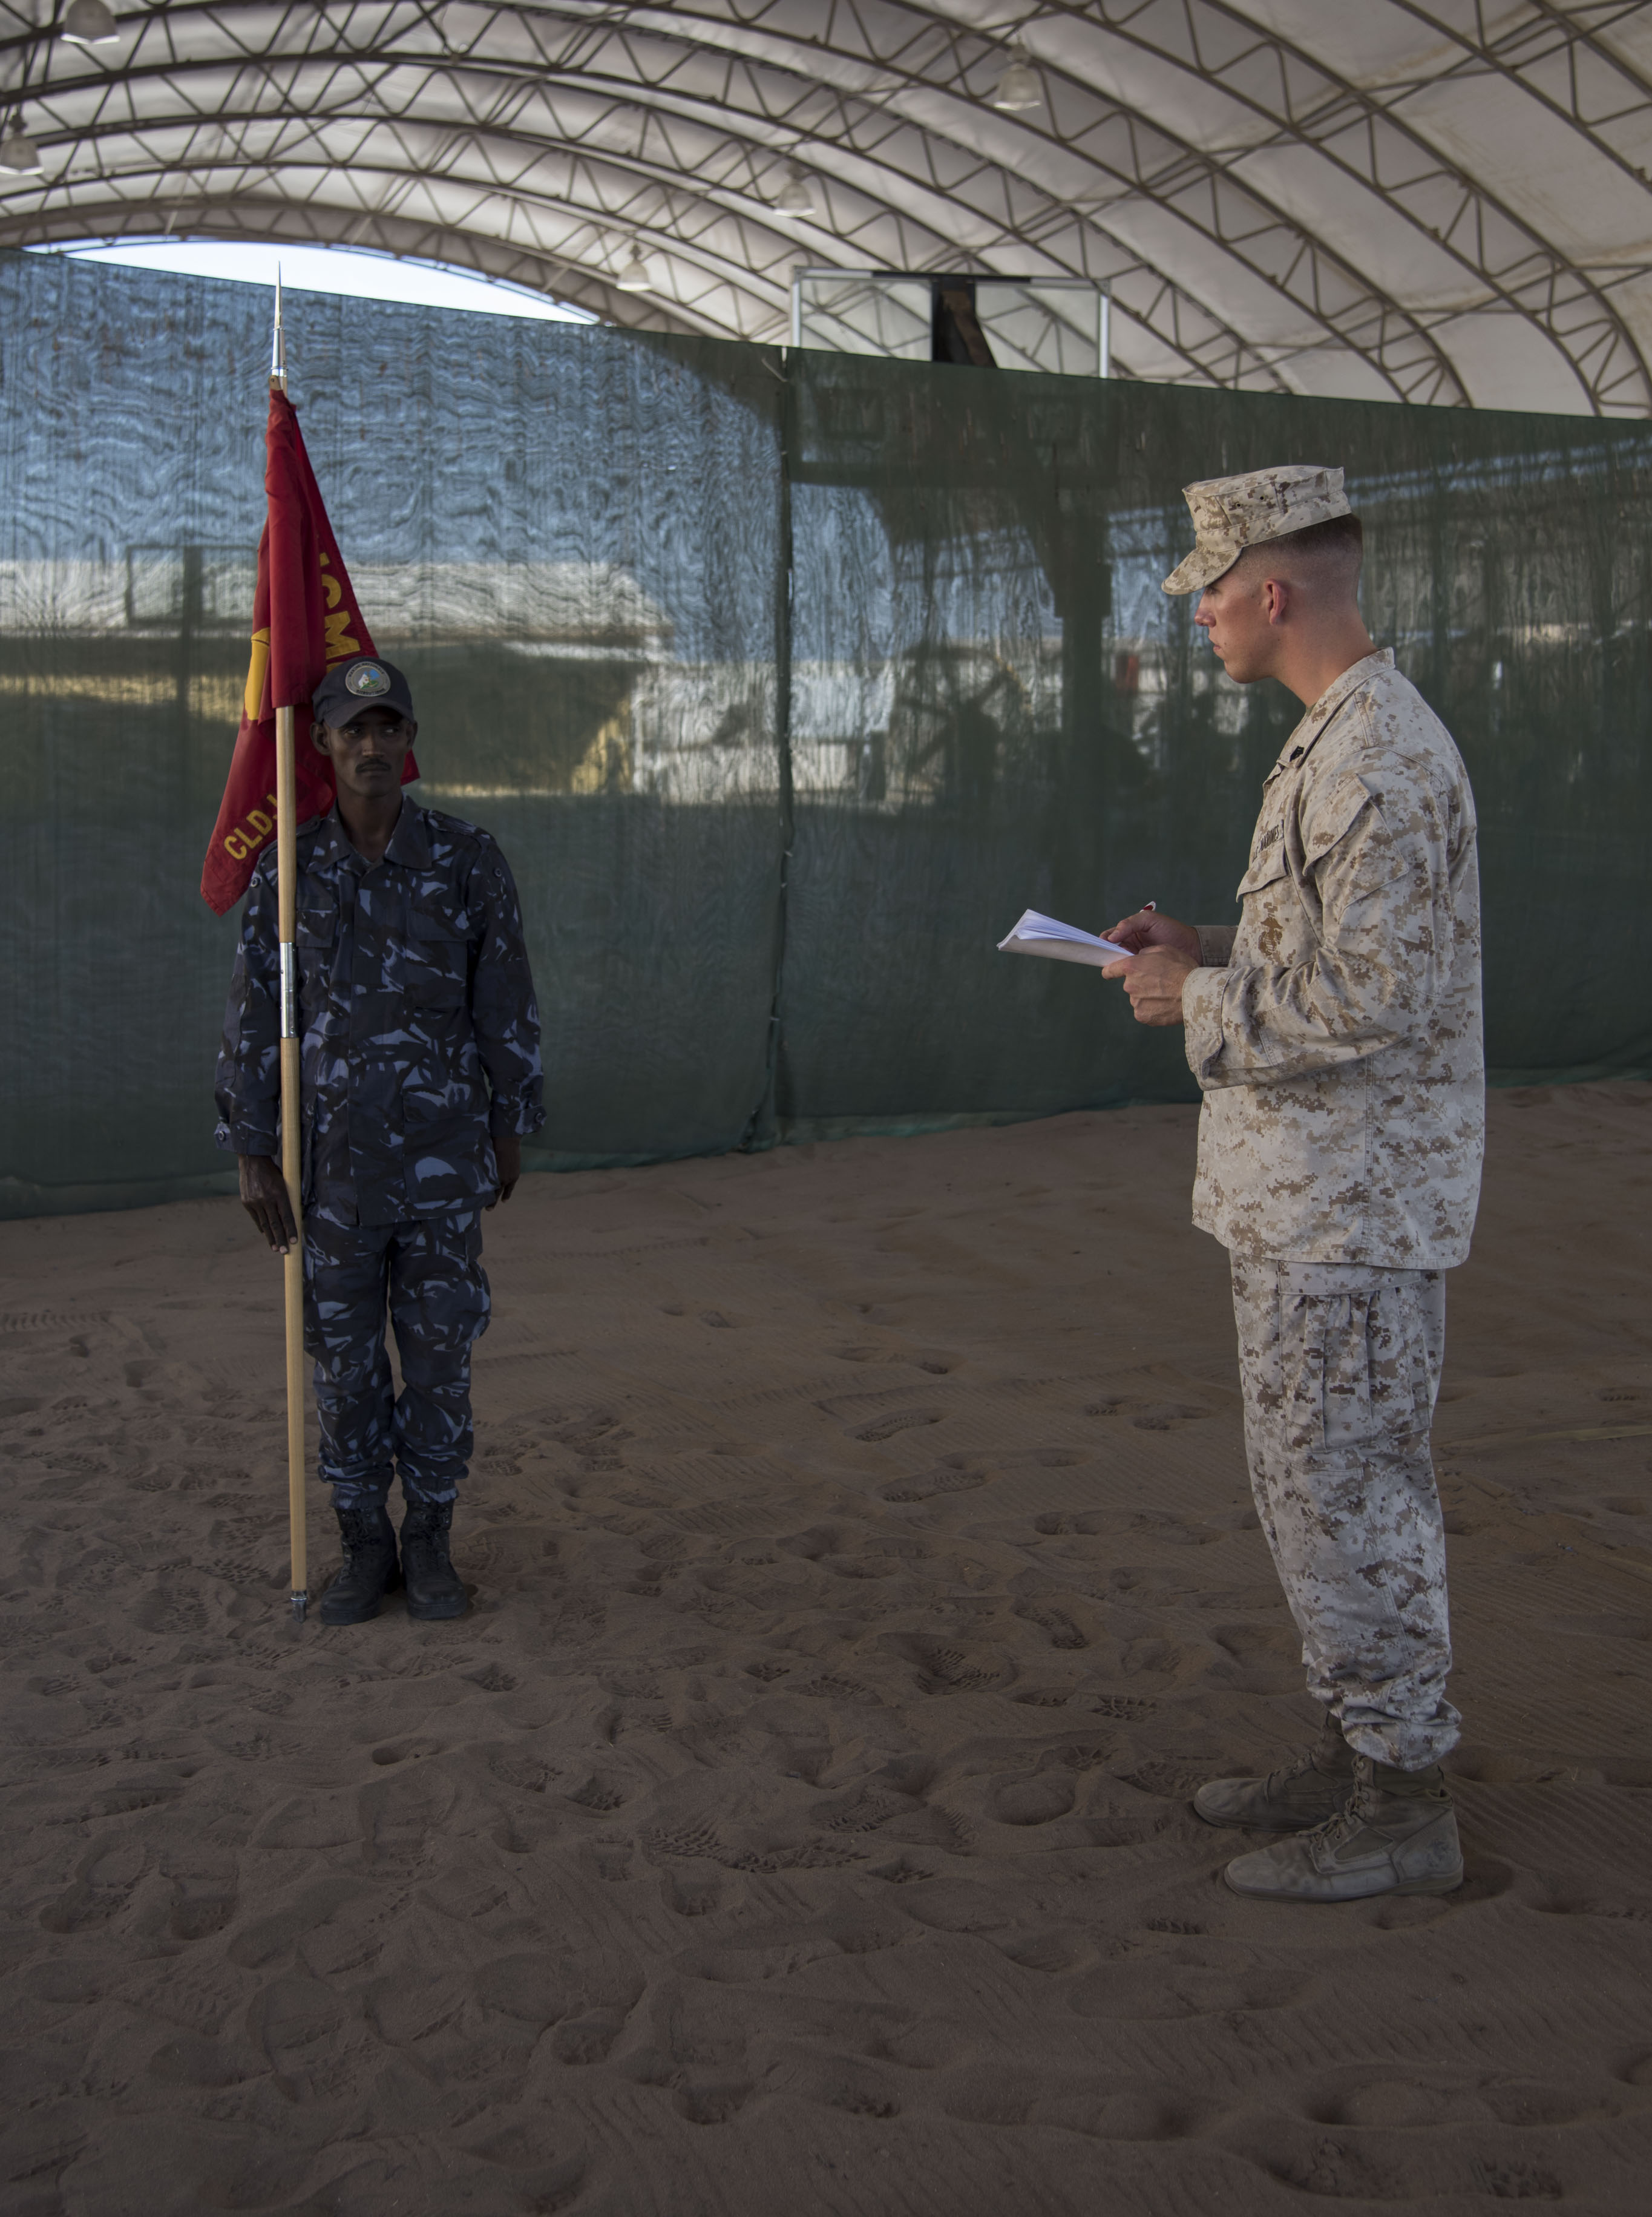 U.S. Marine Corps Sgt. Jacob Blanzy examines a Djiboutian Coast Guard member on during a sword and guidon evaluation as part of a Joint Corporals Course hosted by Combined Joint Task Force – Horn of Africa at Camp Lemonnier, Jan. 17, 2018. The Joint Corporals Course is designed to provide junior service members with the knowledge and skills necessary to assume leadership roles of greater responsibility as a non-commissioned officer, as well as strengthen bonds between participating militaries. (U.S. Air National Guard photo by Staff Sgt. Allyson L. Manners)